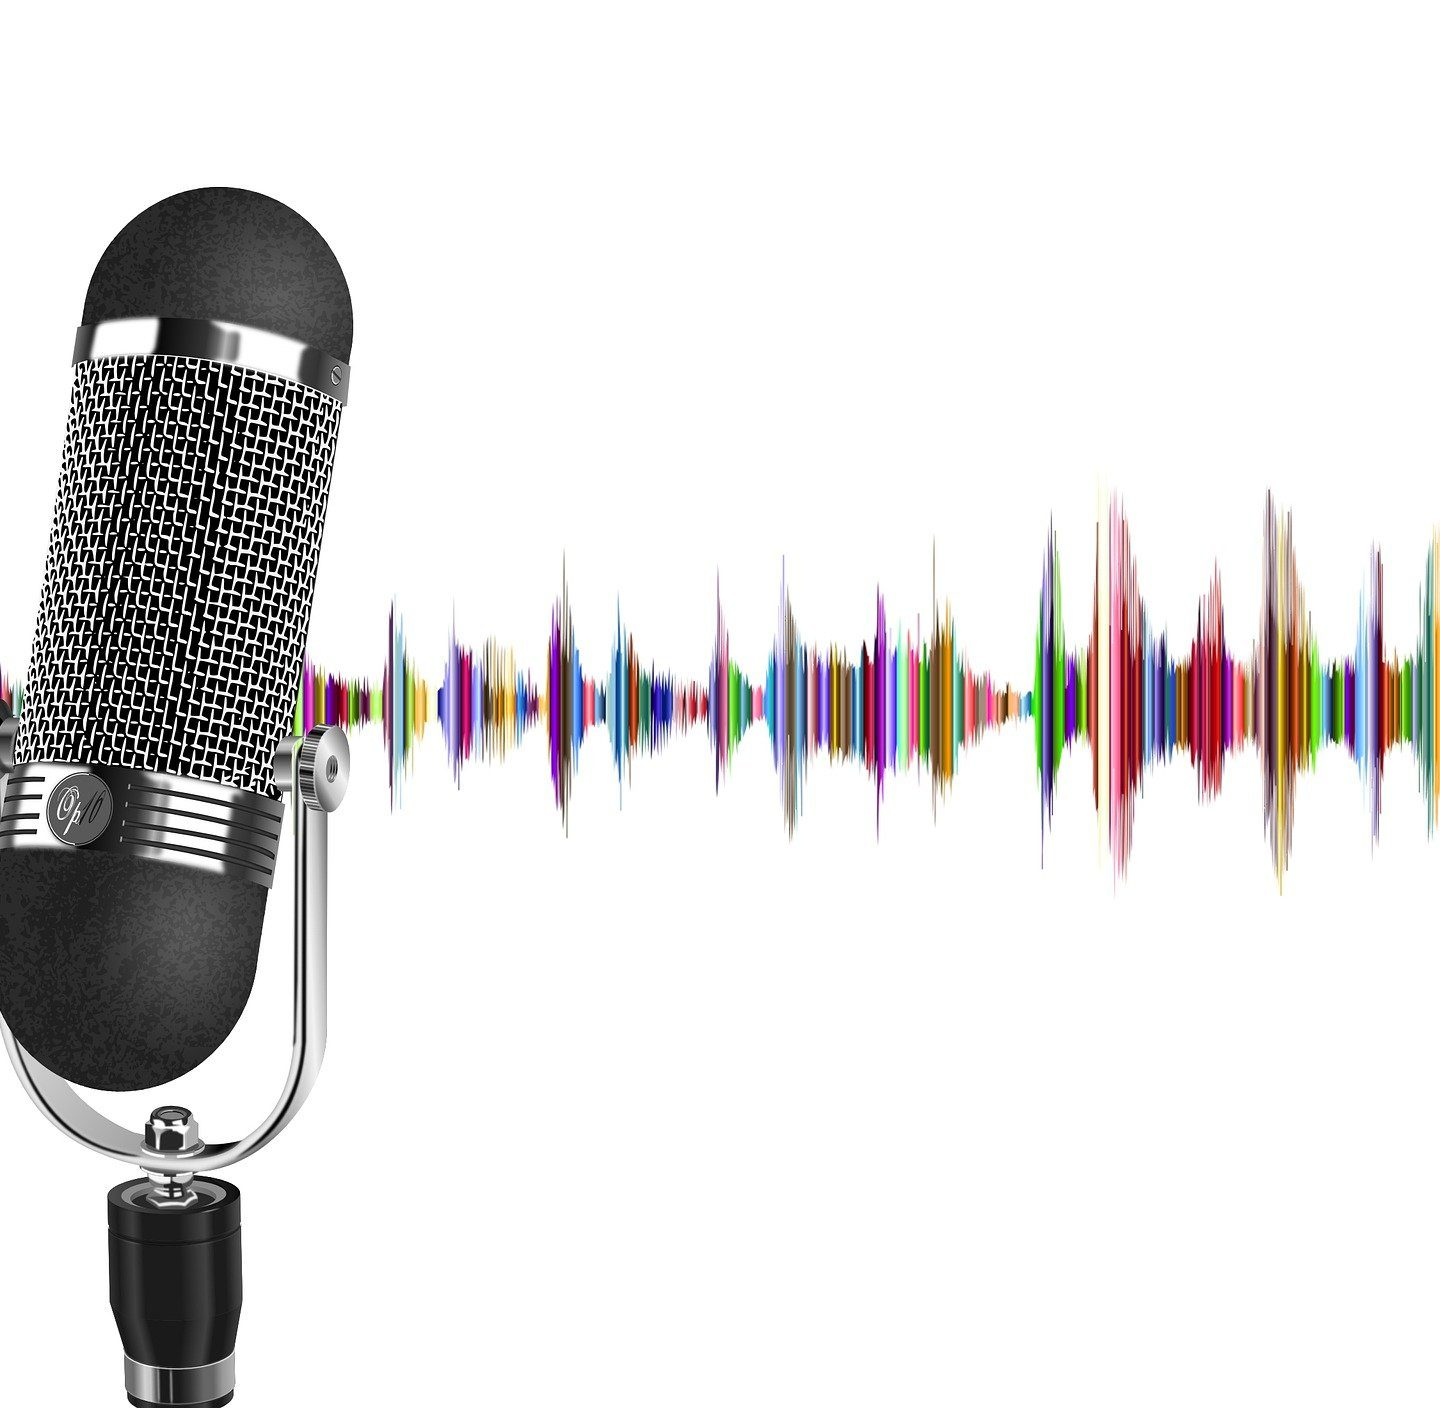 How To Nail Podcast Ad Reads And Cross-Promote Your YouTube Channel